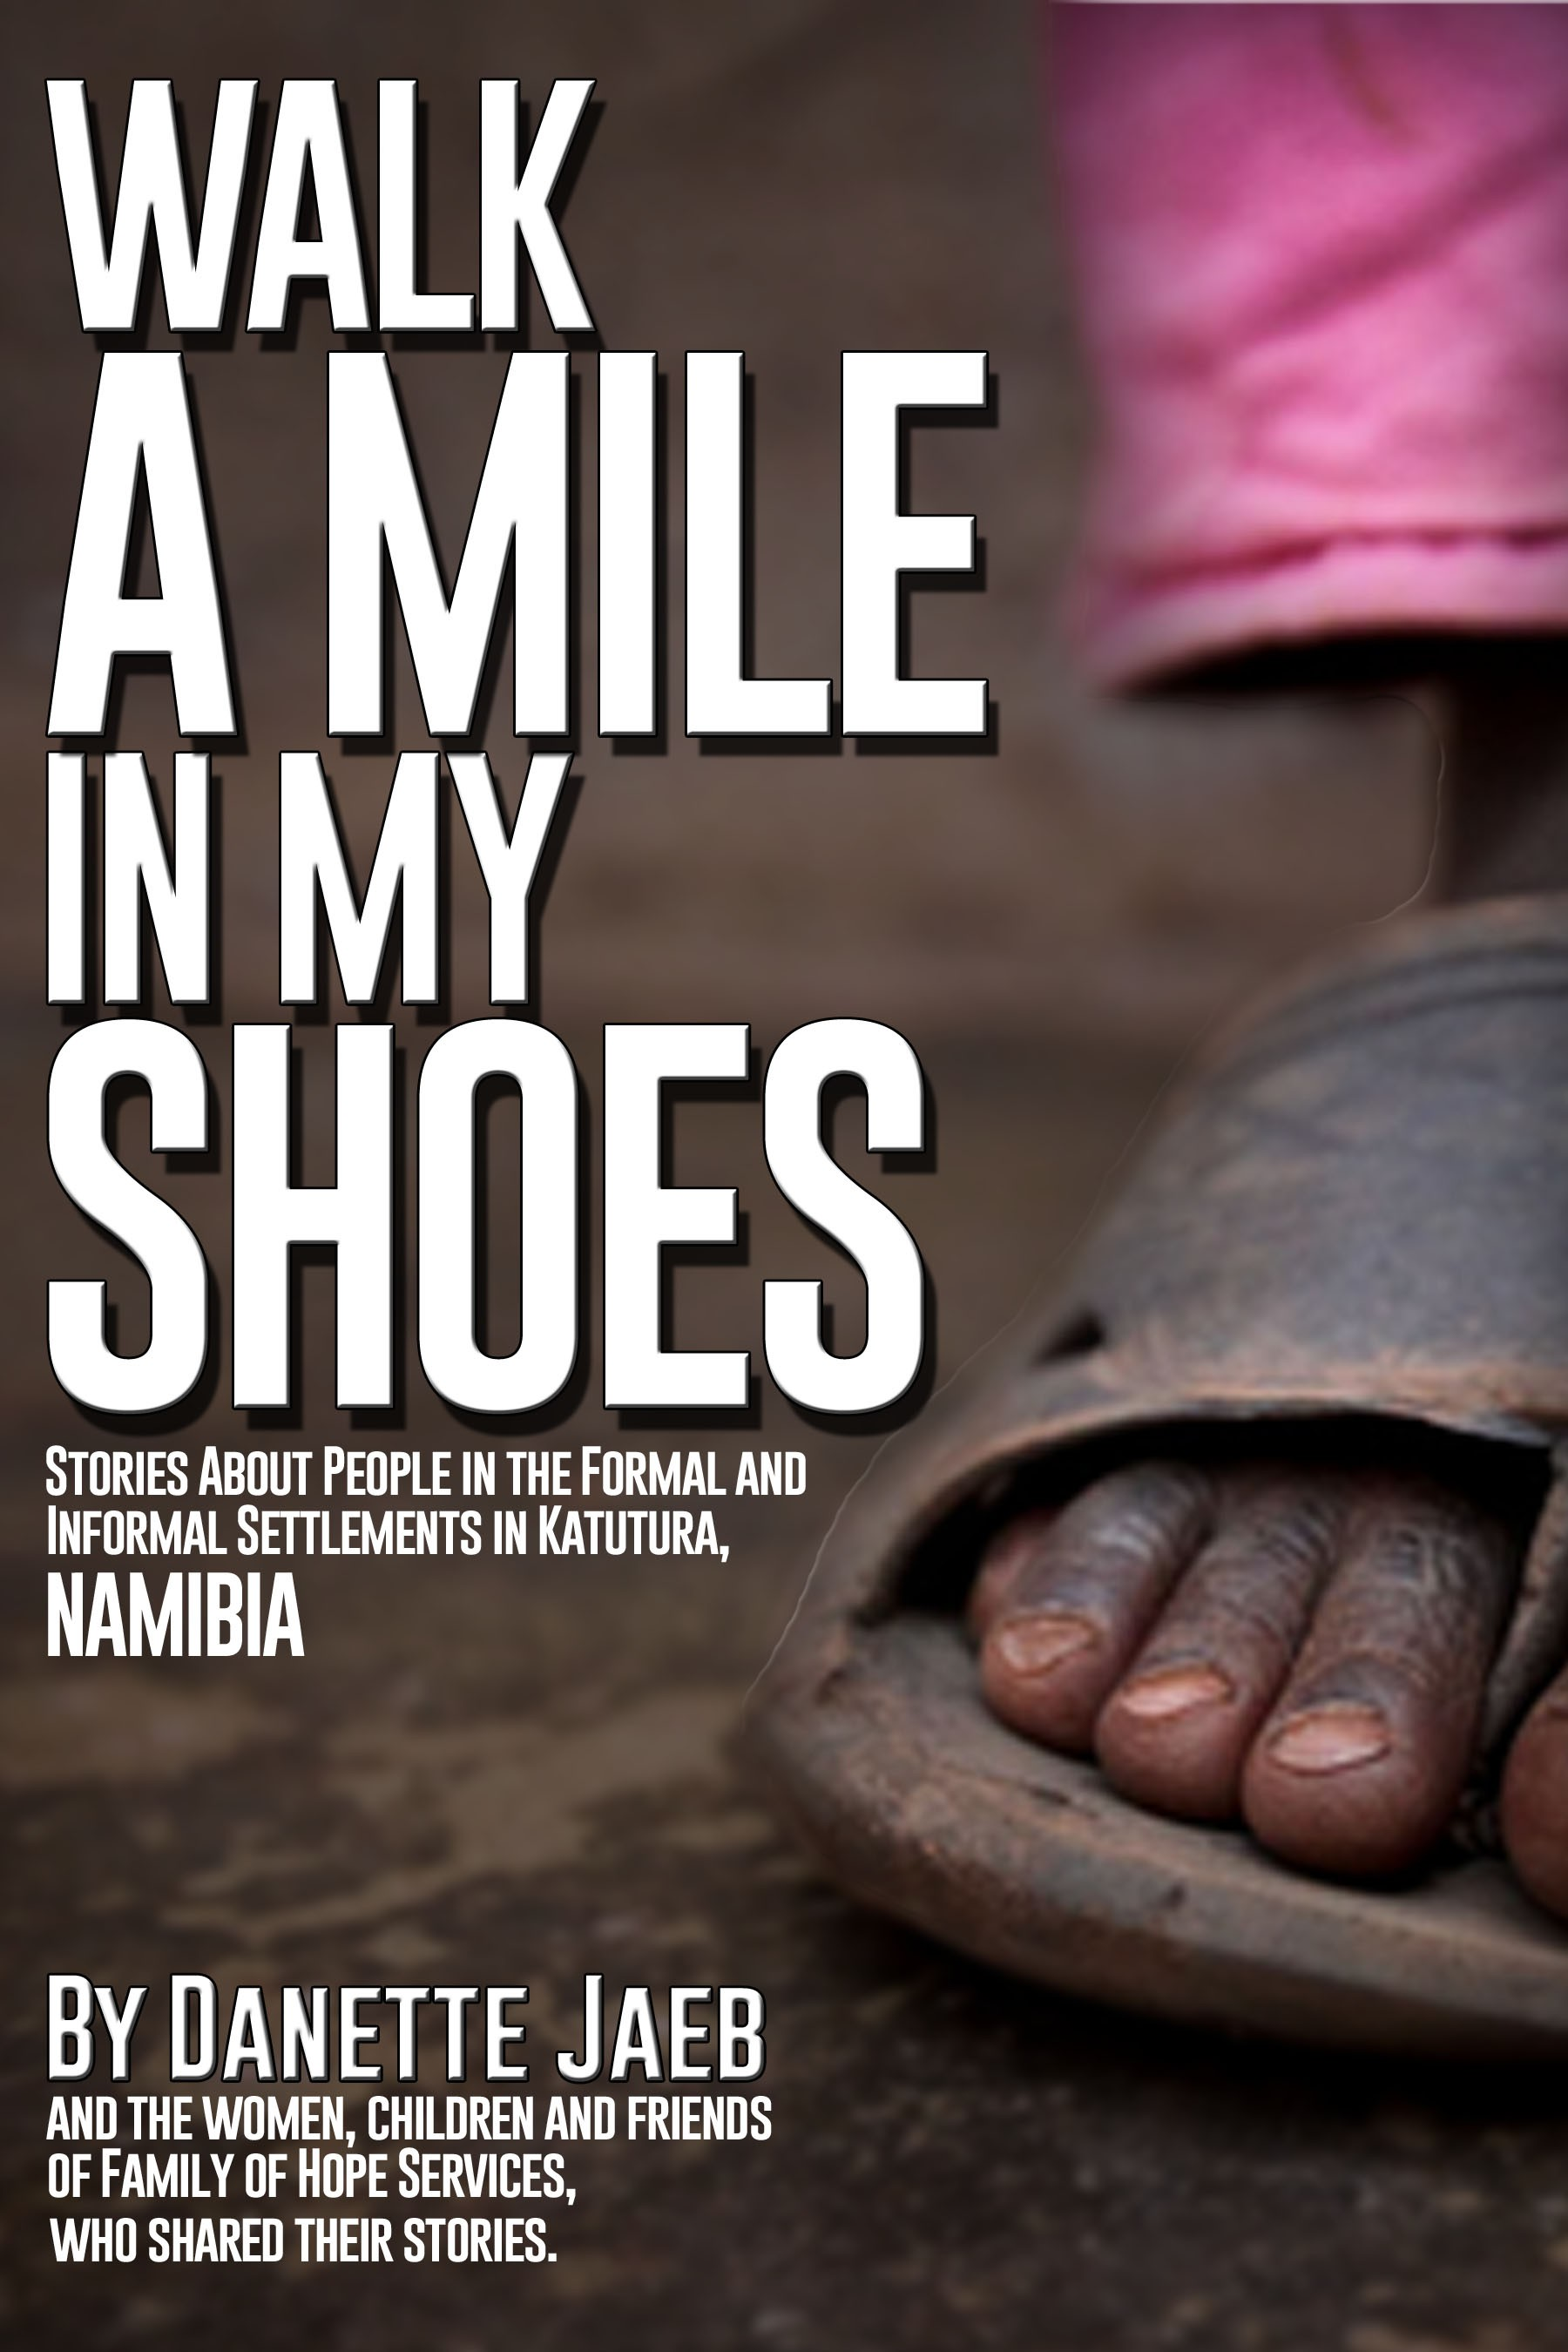 Please help me raise money for vulnerable kids in Namibia.